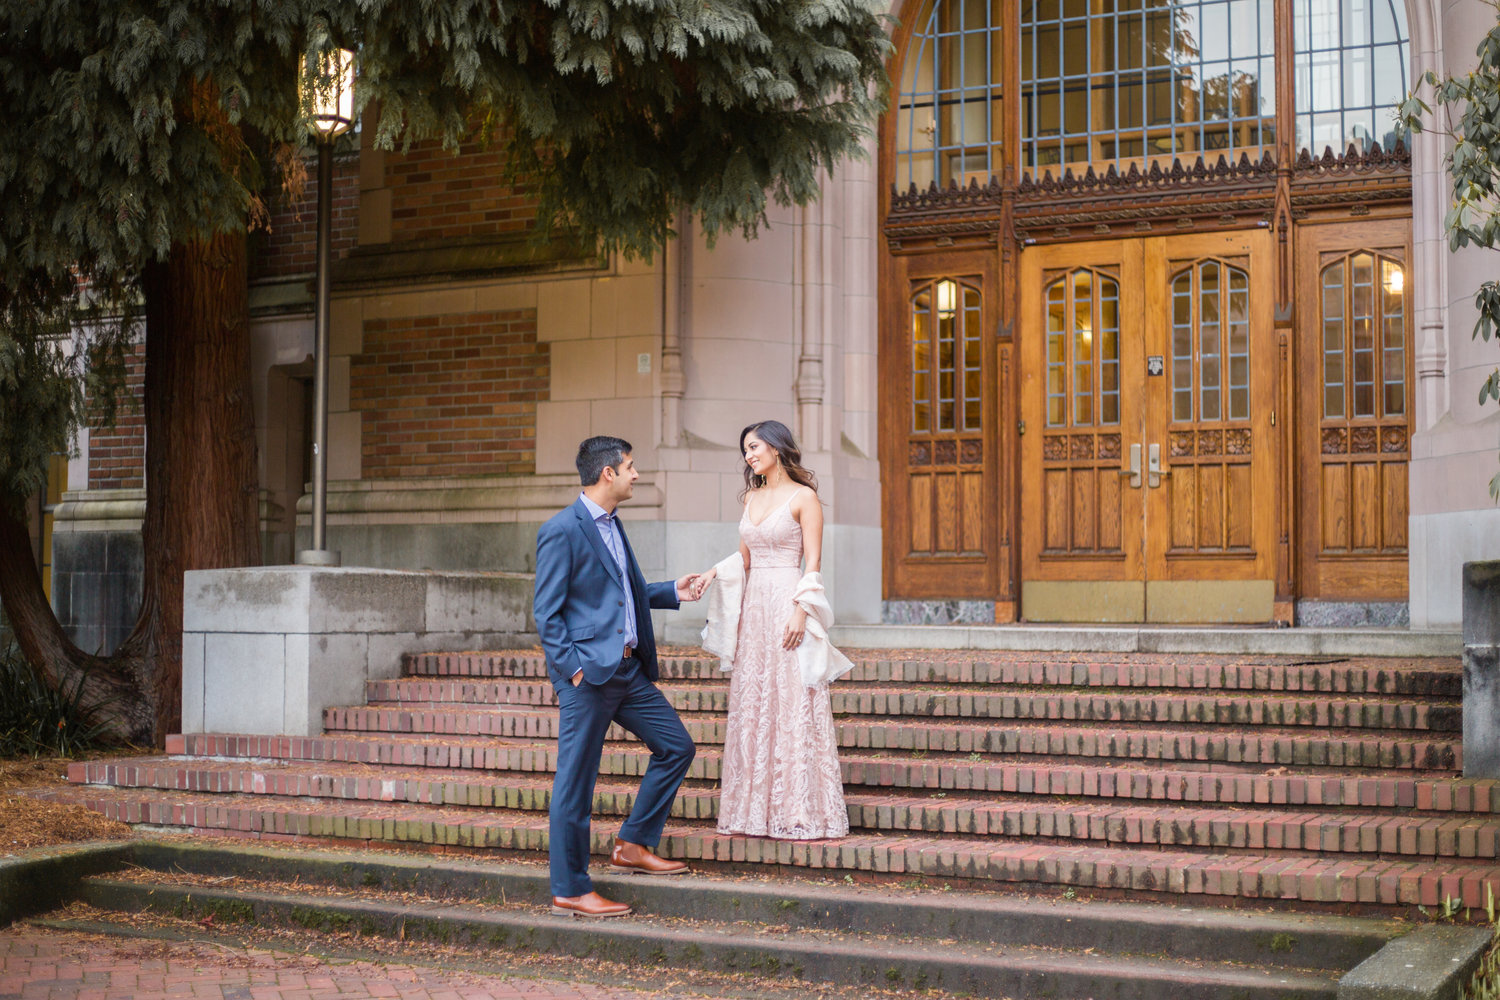 Travel — Our Wedding